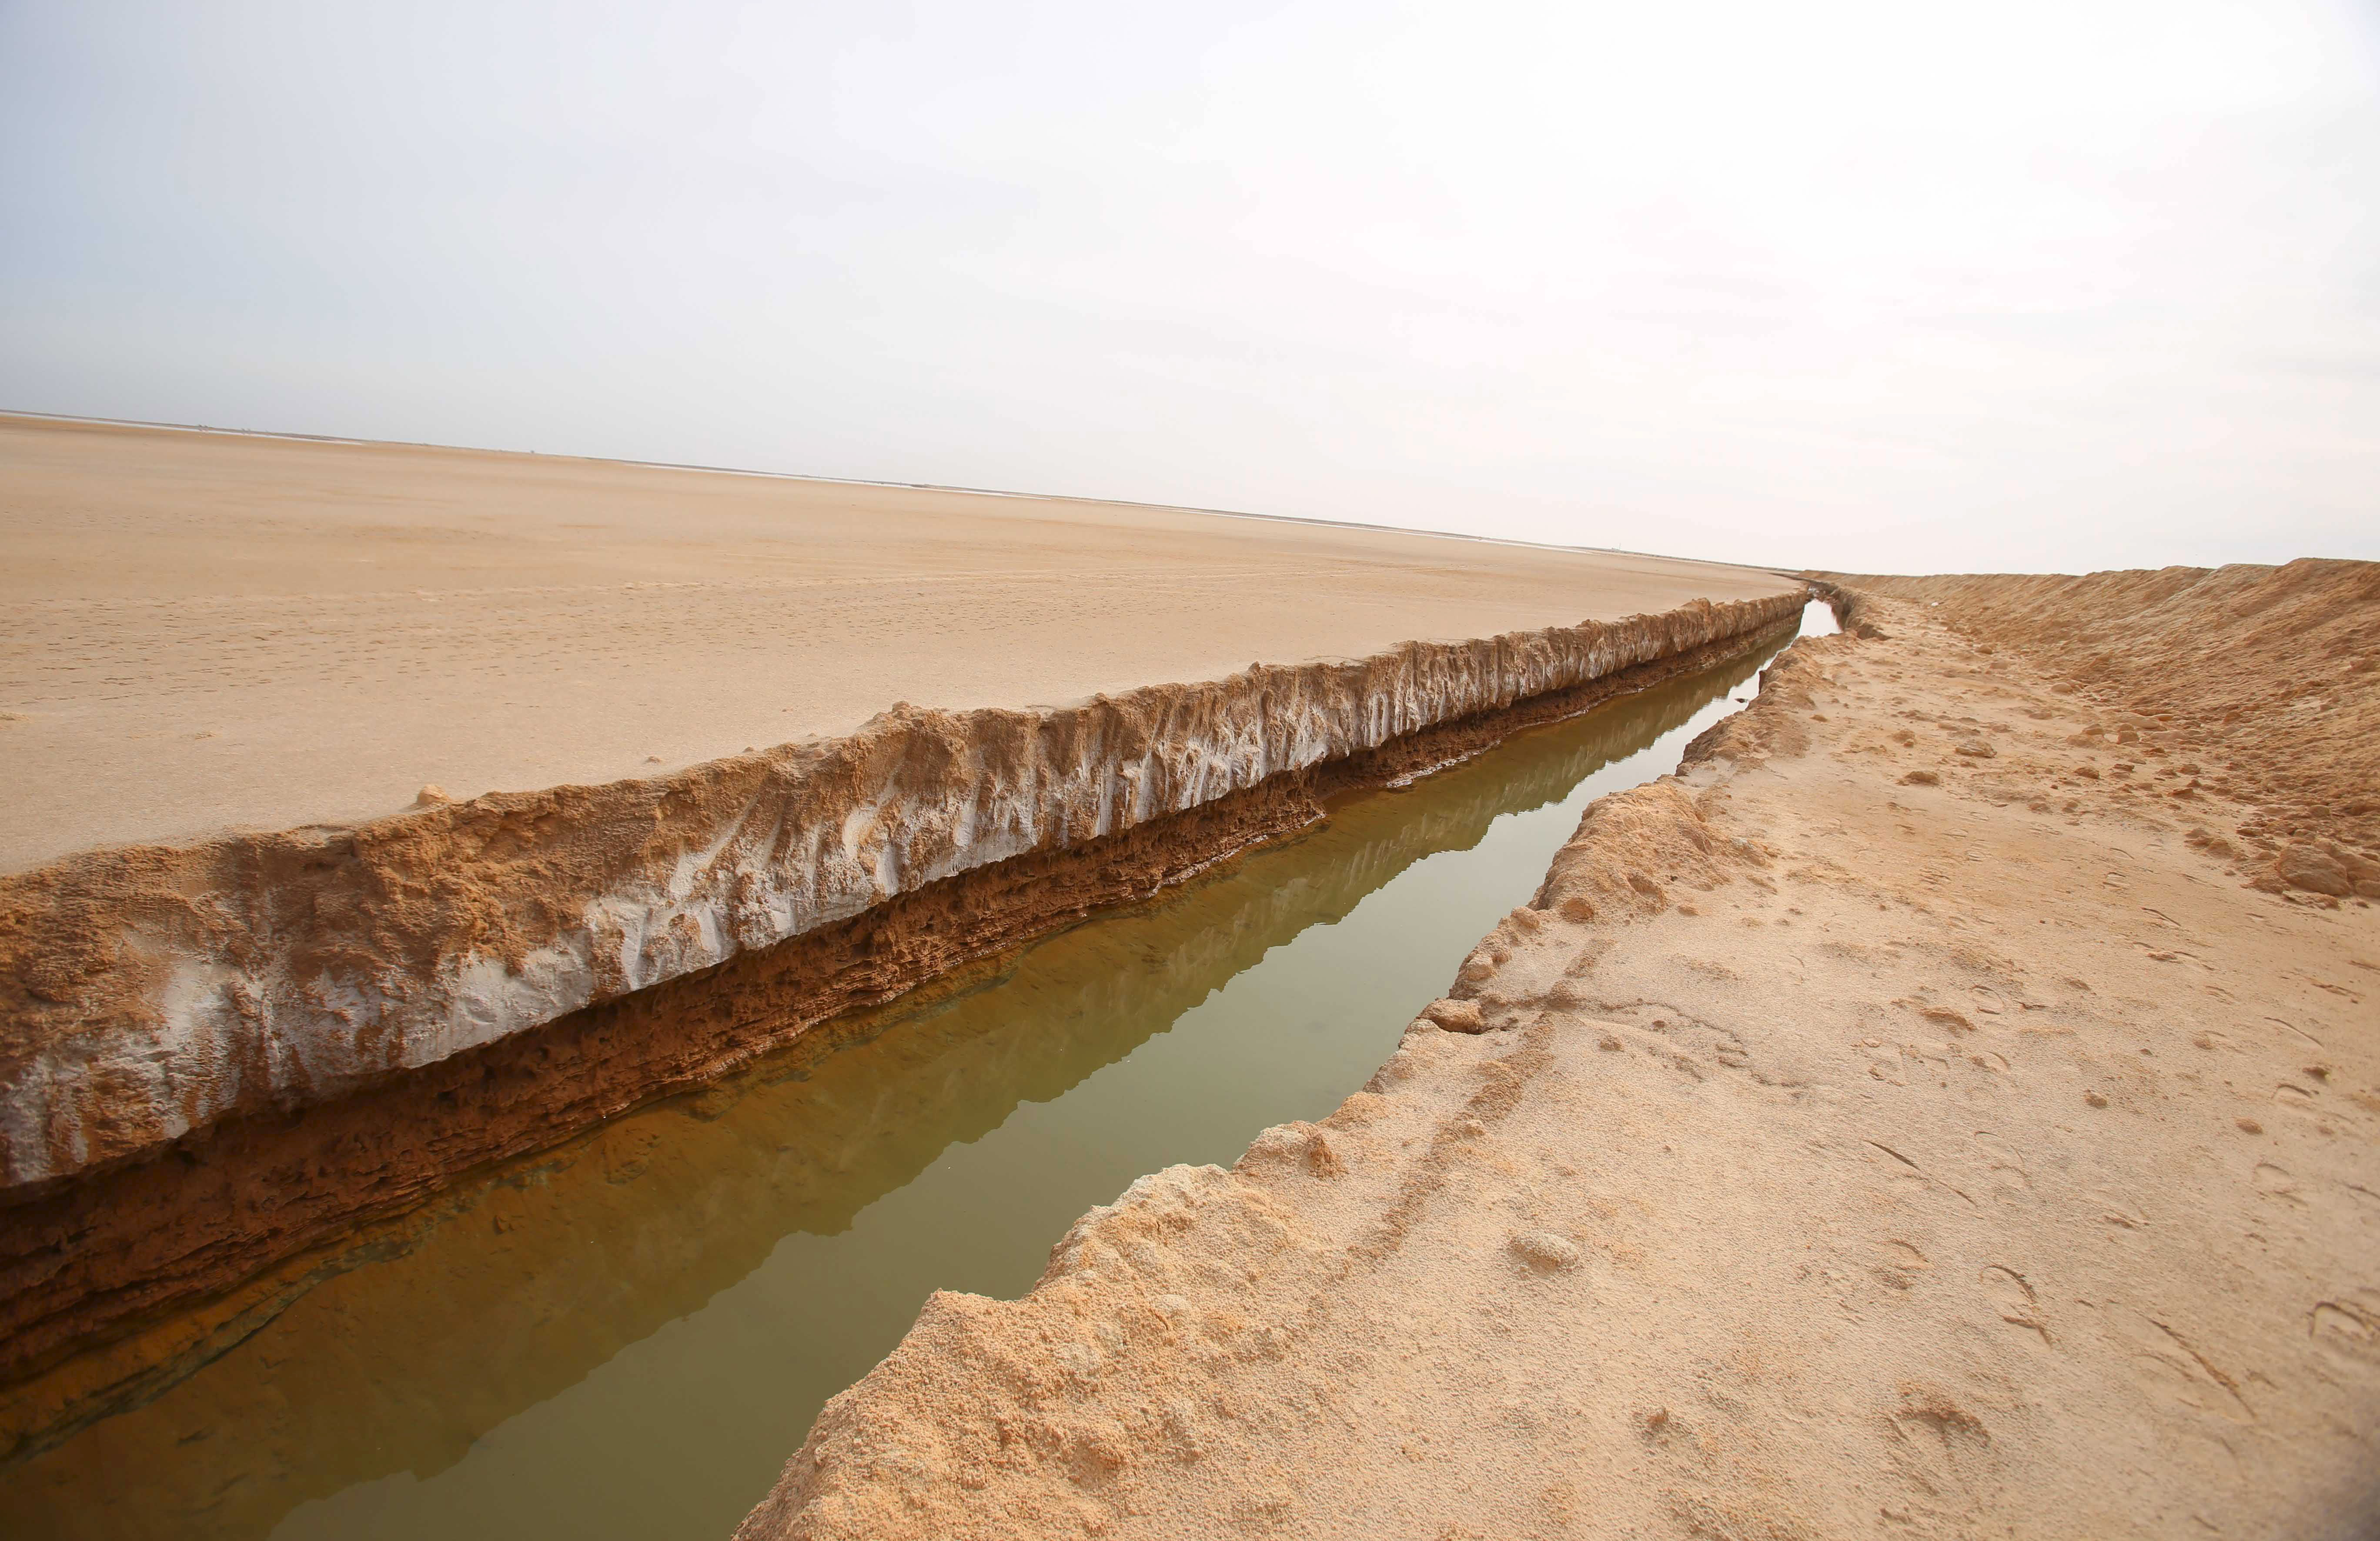 A general view of a trench, that forms part of a barrier along the frontier with Libya, is seen in Sabkeht Alyun, Tunisia February 6, 2016.